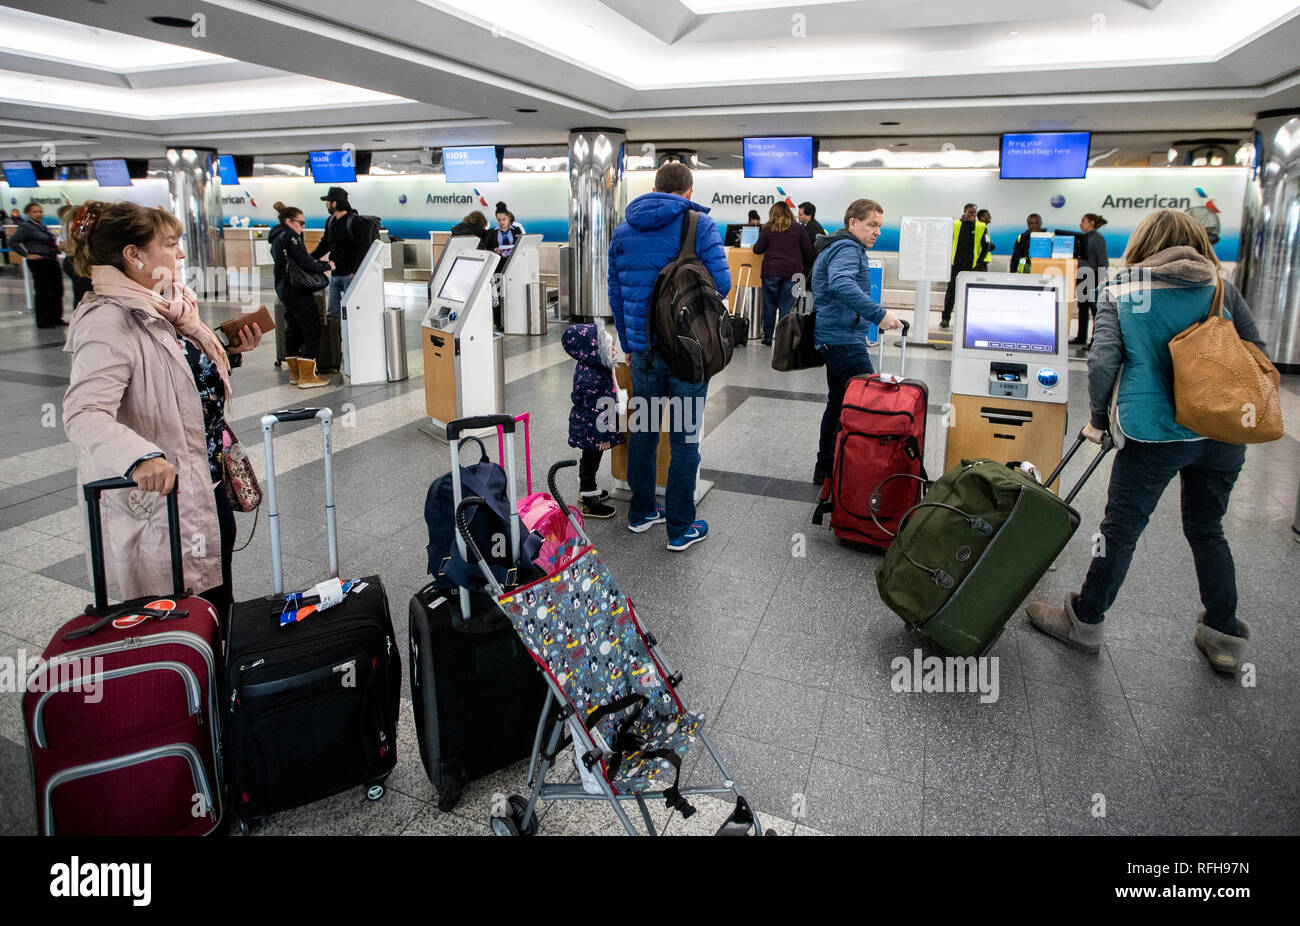 New York, USA. 25th Jan, 2019. Passengers prepare to check in at the LaGuardia Airport in New York, the United States, on Jan. 25, 2019. The U.S. Federal Aviation Administration on Friday halted flights bound for New York City's LaGuardia Airport, due to staff shortage caused by the historic government shutdown. Credit: Wang Ying/Xinhua/Alamy Live News - Stock Image